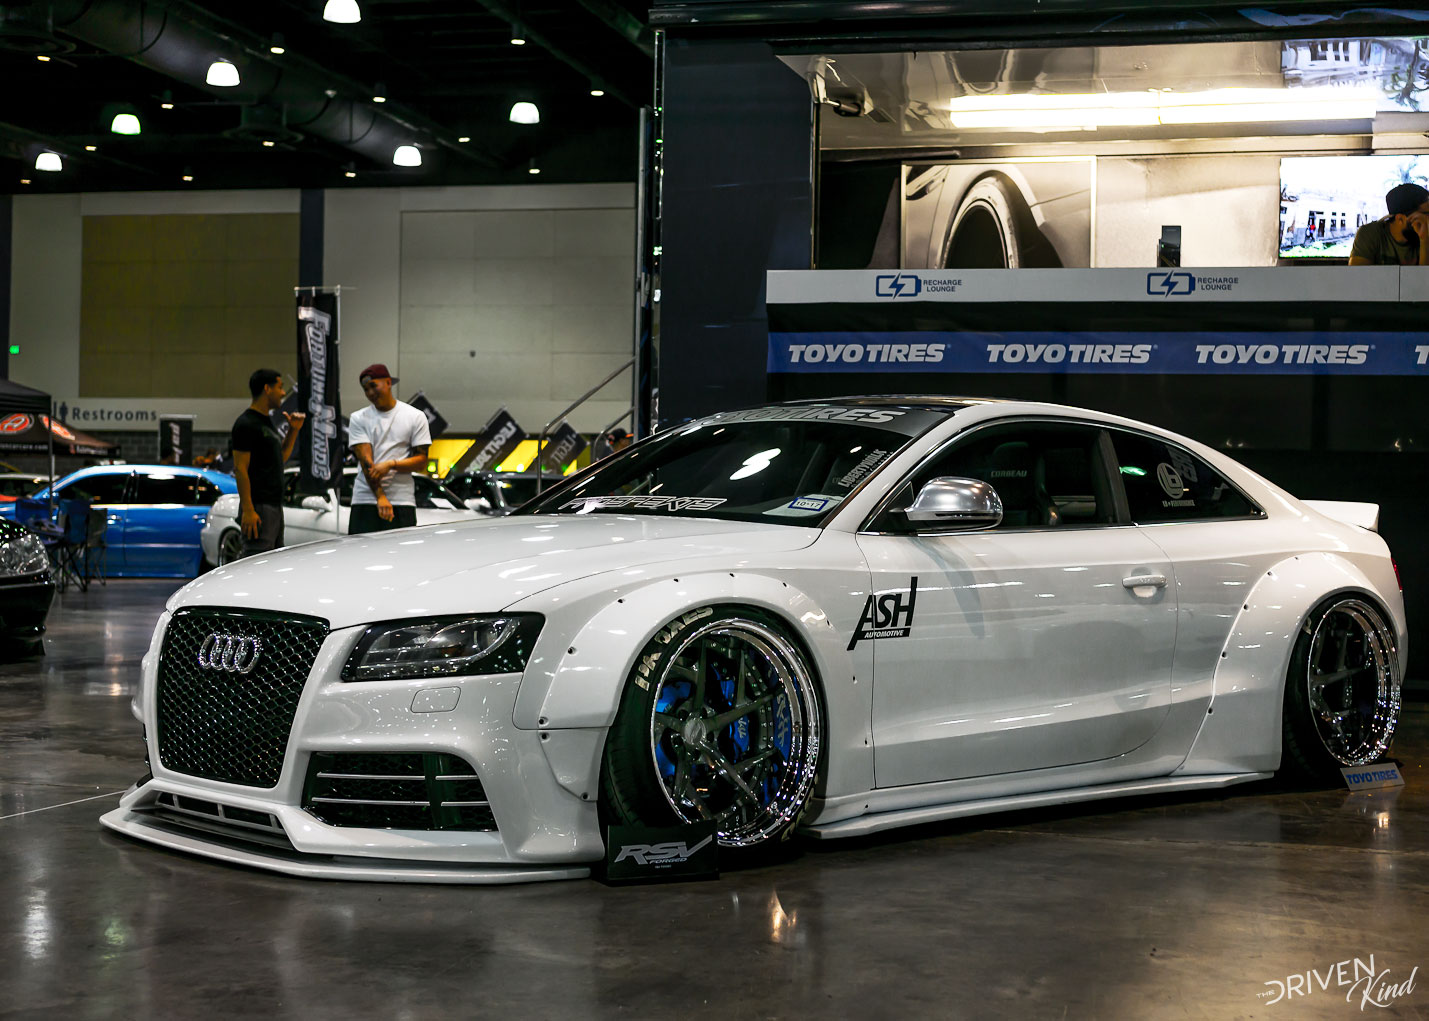 Audi S5 widebody STANCENATION FLORIDA PALM BEACH CONVENTION CENTER 2017 Pt. 1 The Driven Kind Coverage